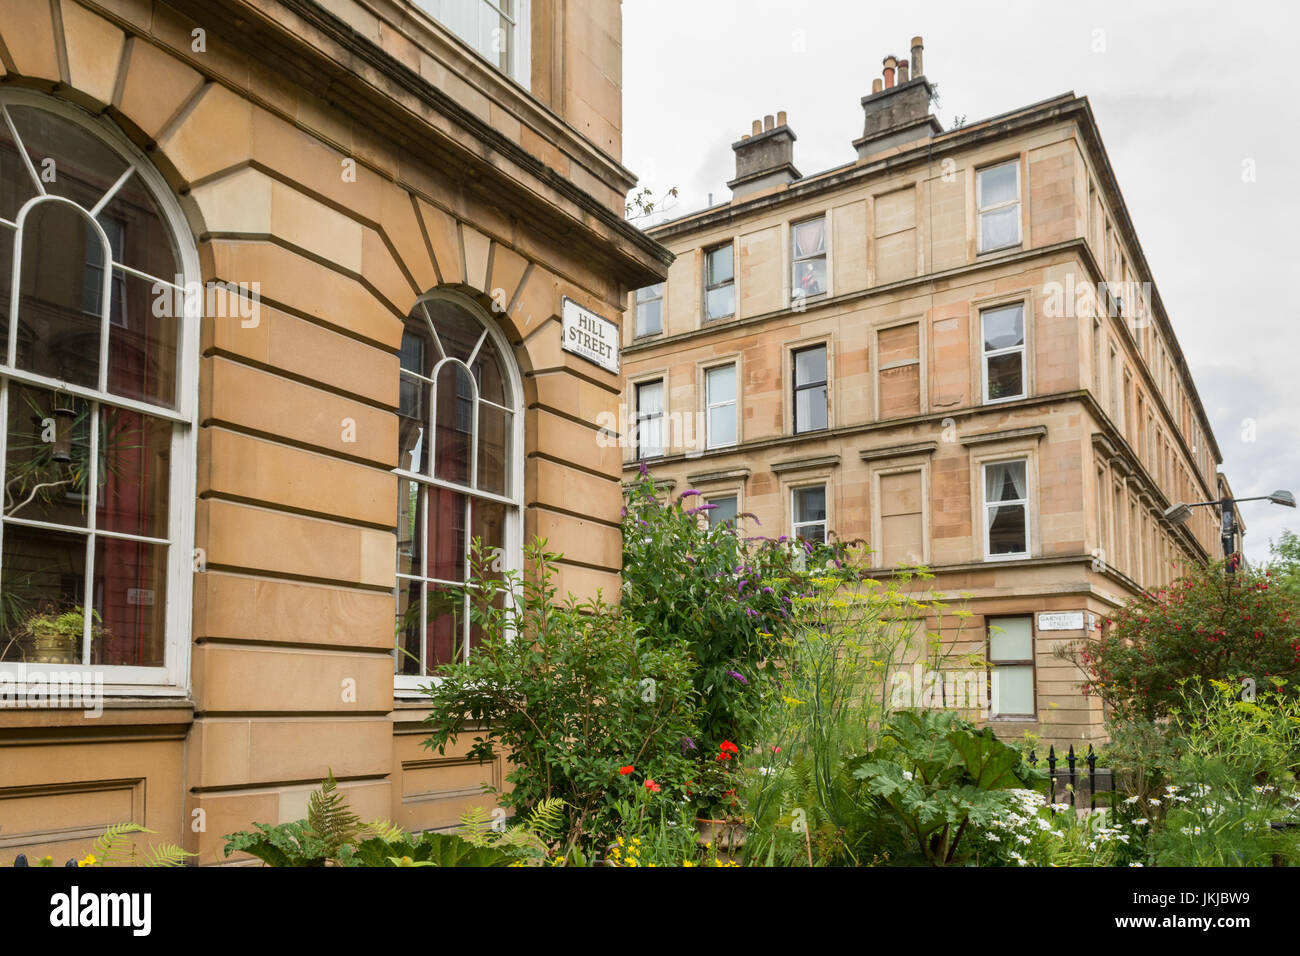 Garnethill - a residential area of Glasgow City Centre, Scotland, UK - Stock Image